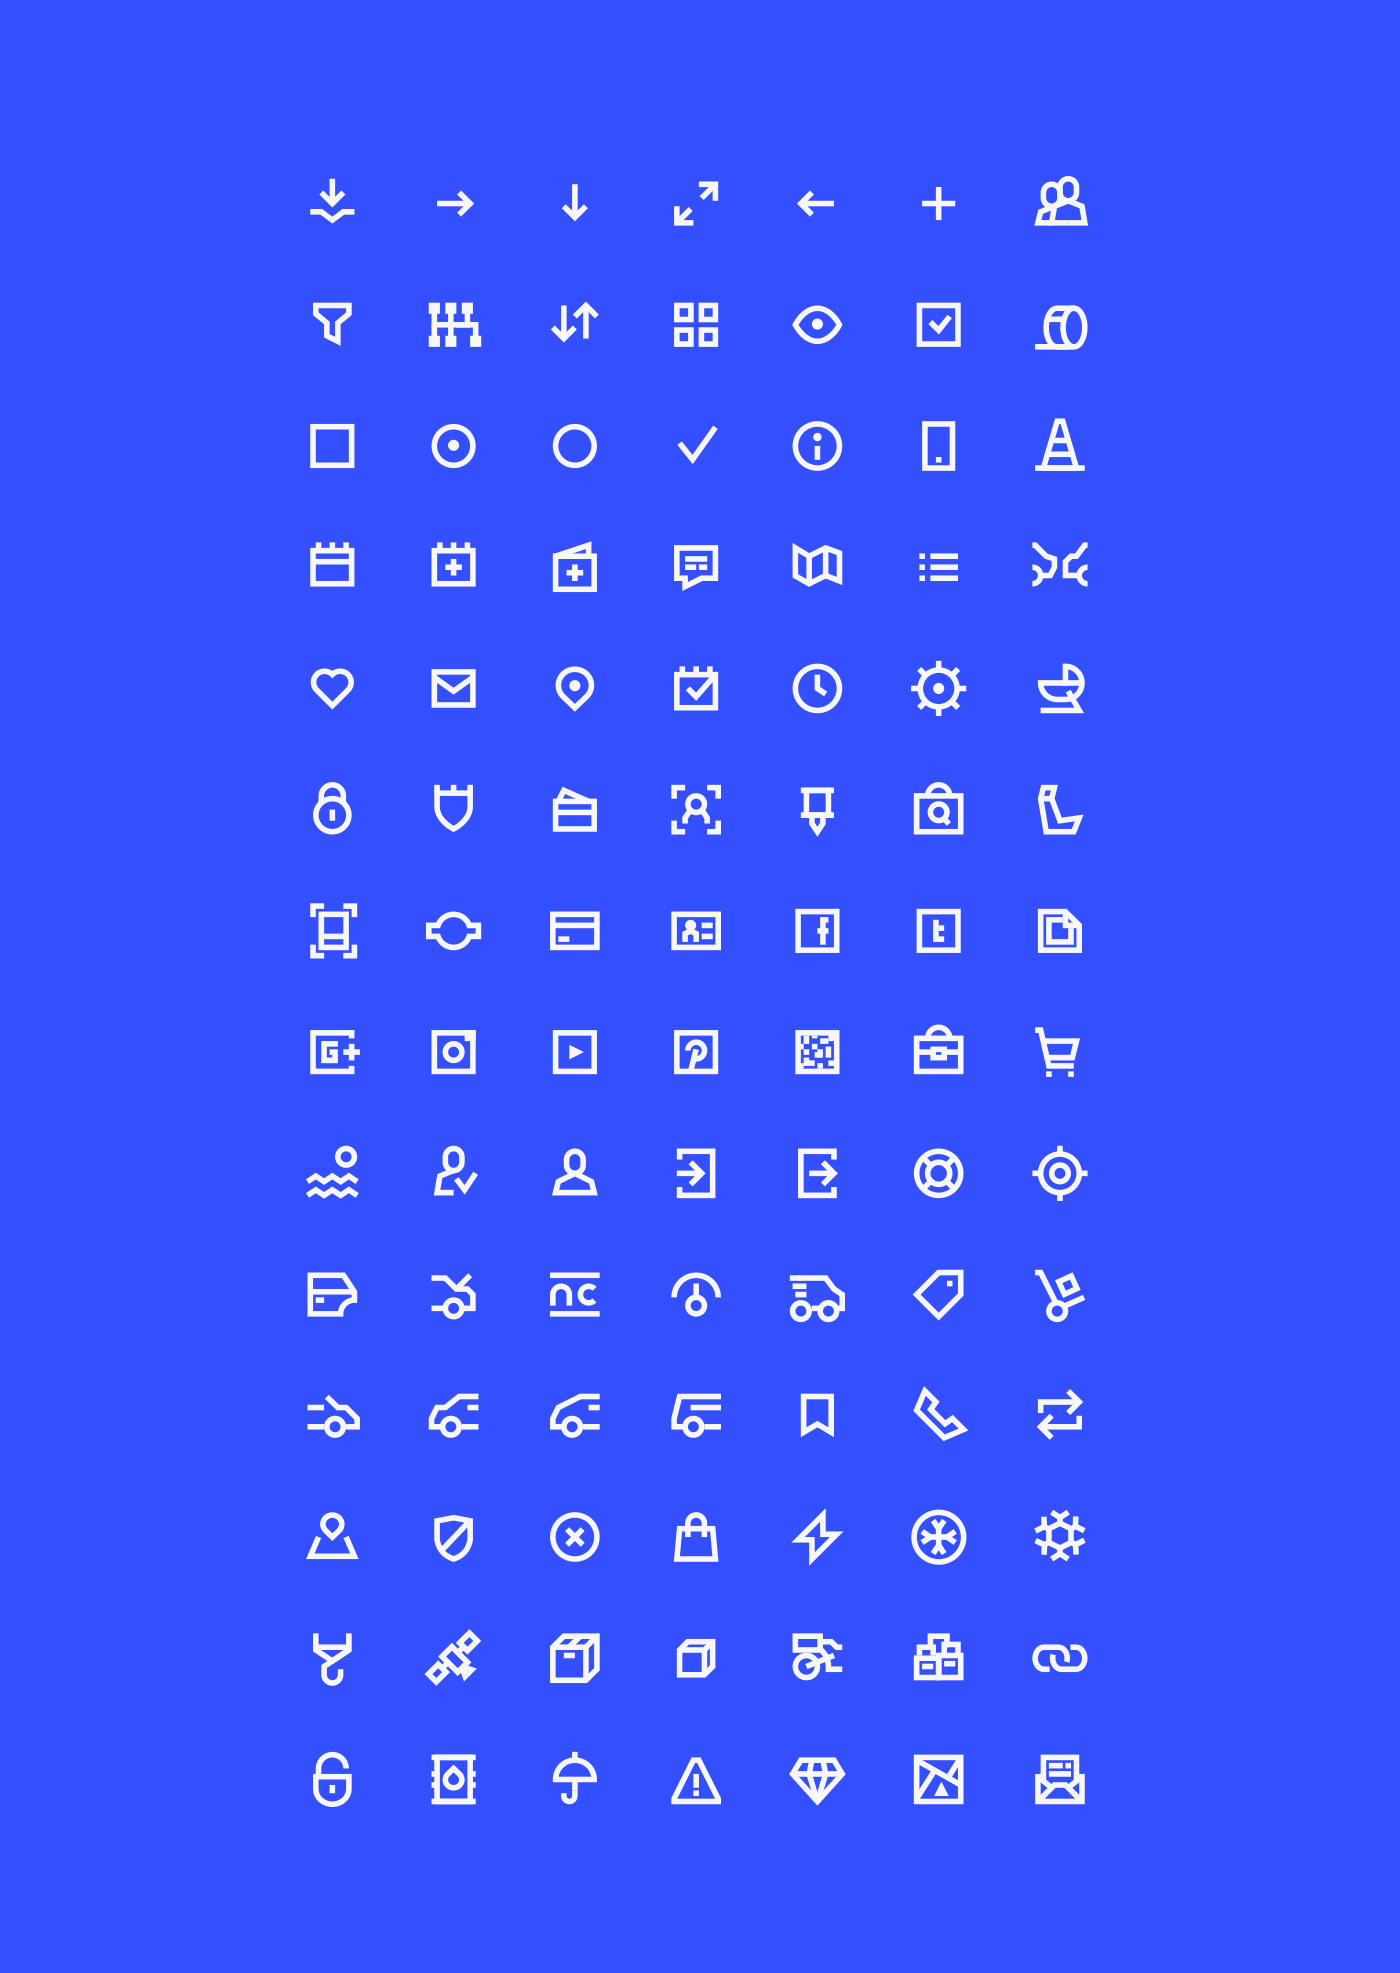 98 UI Pixel Perfect Icons Set - Basic Pack